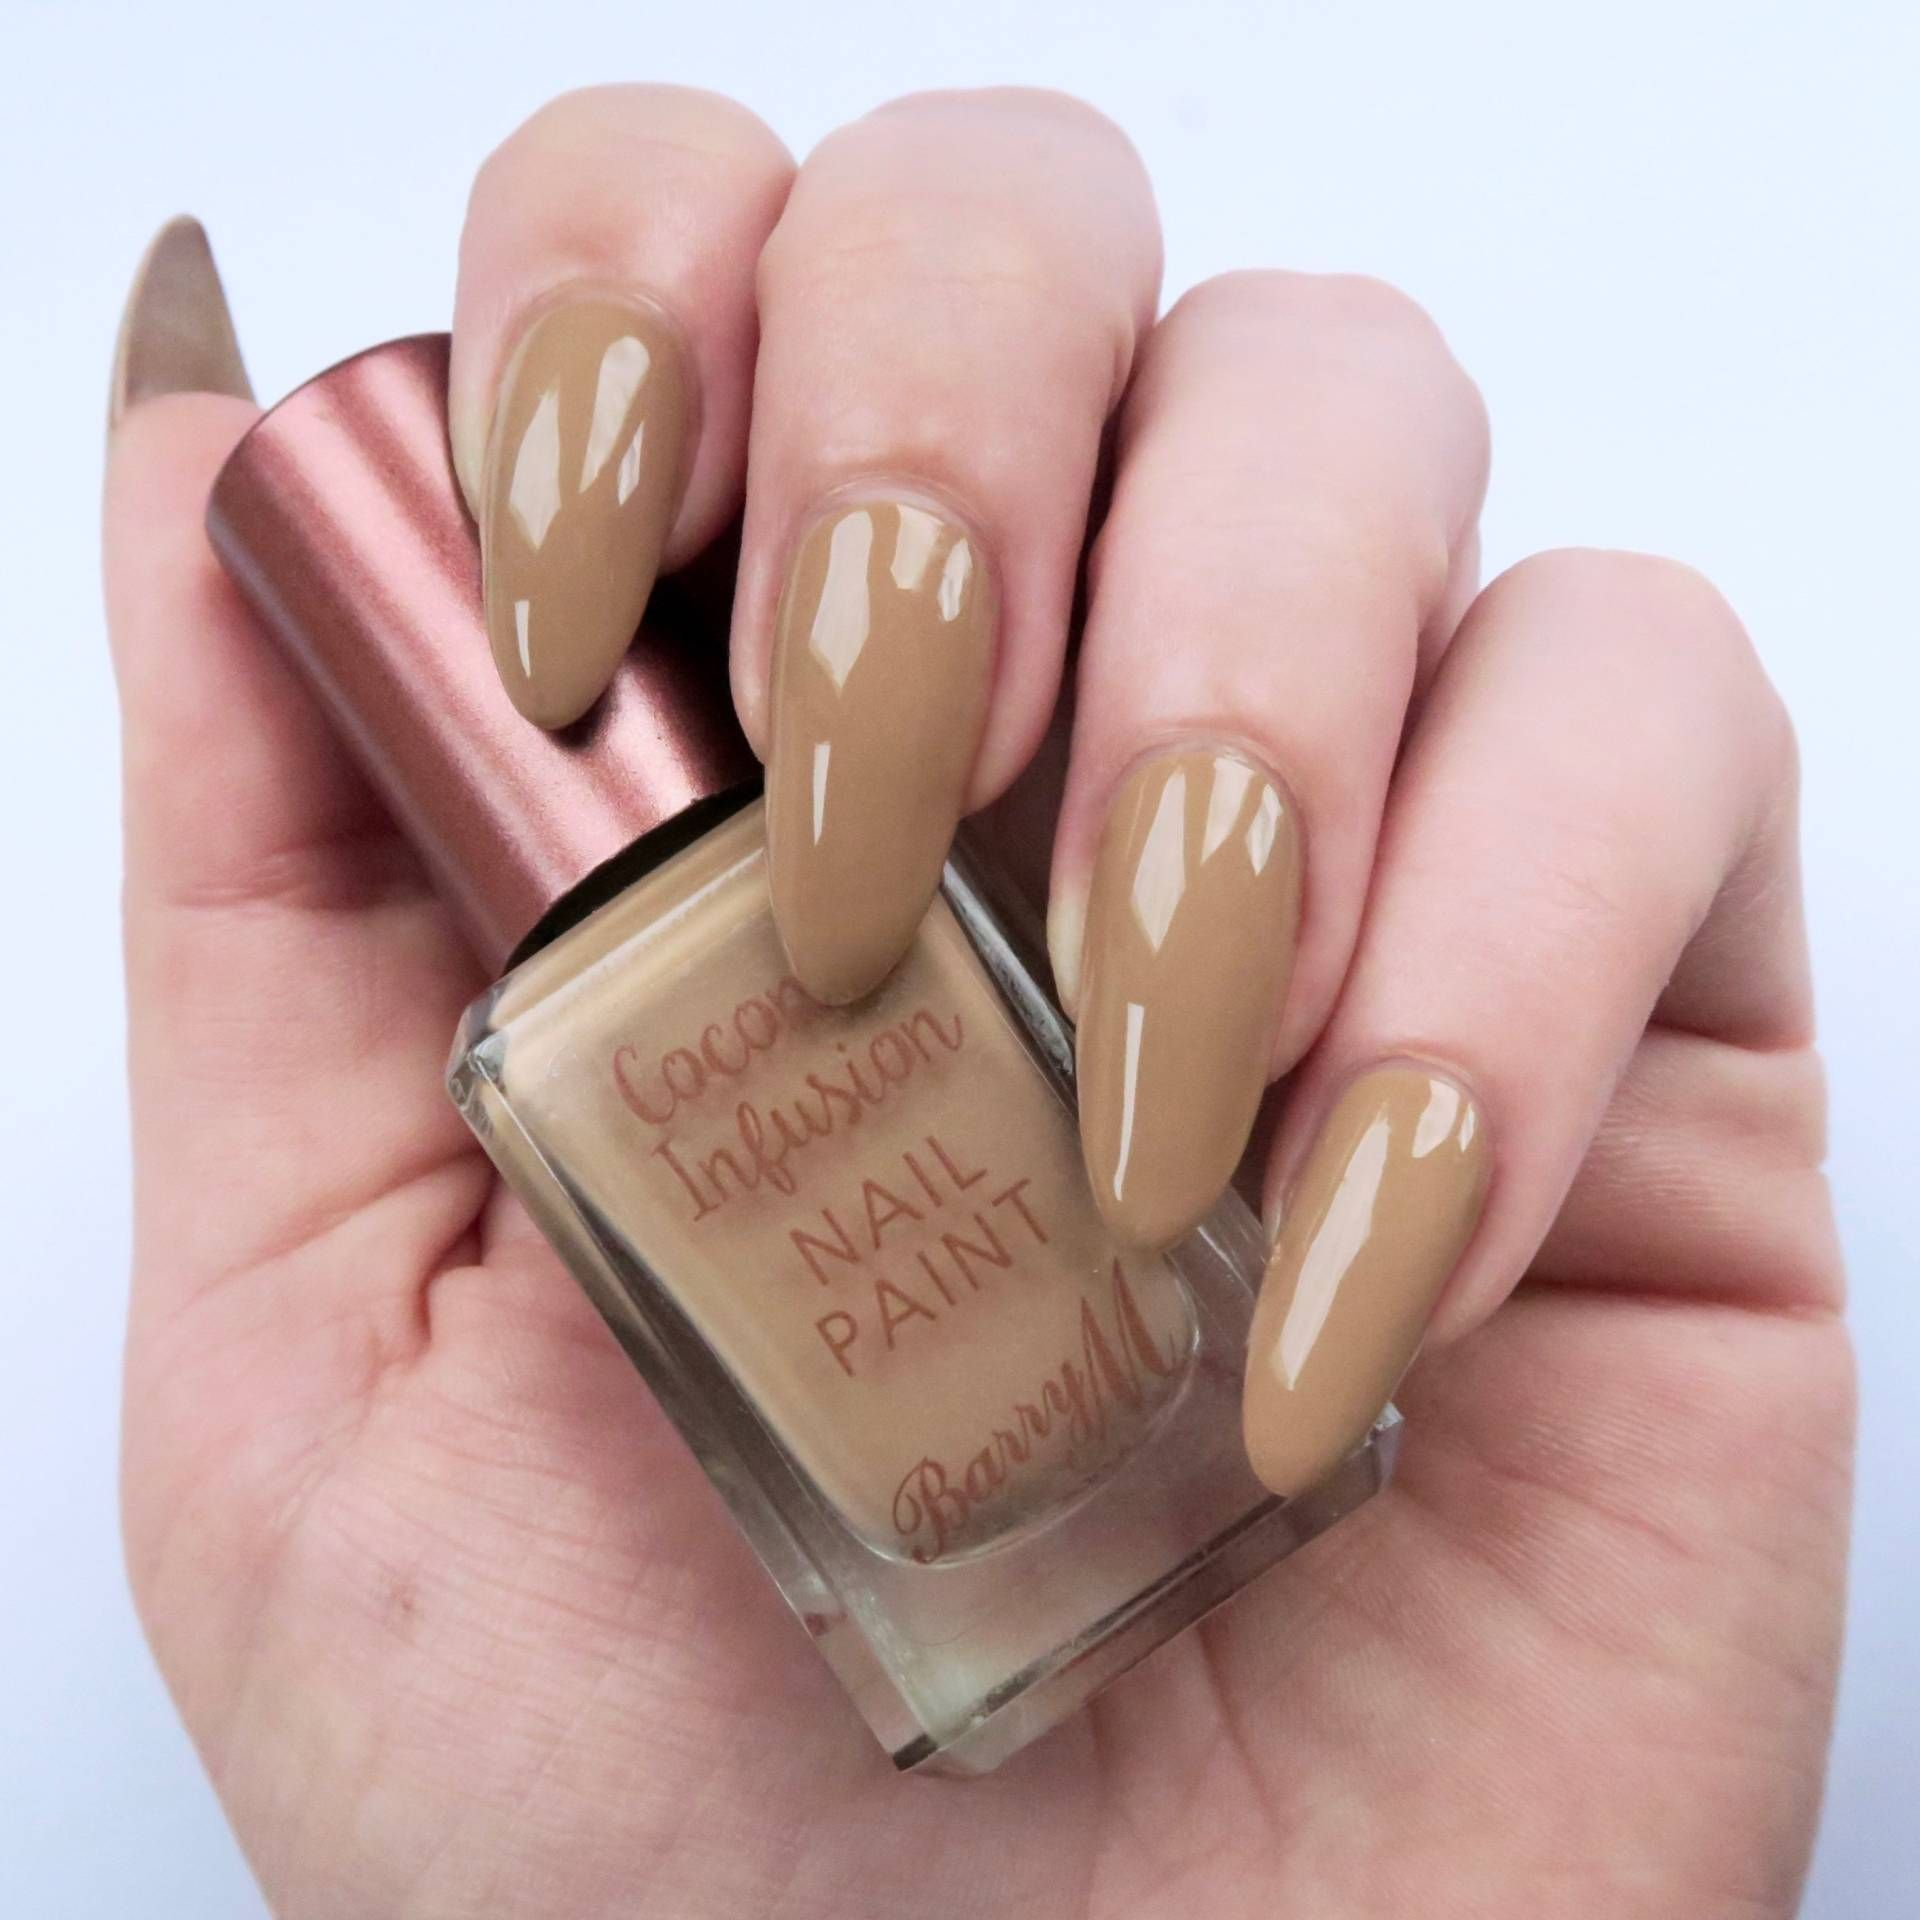 Barry M Coconut Infusion Review | Tiki hut, Natural nails and Swatch